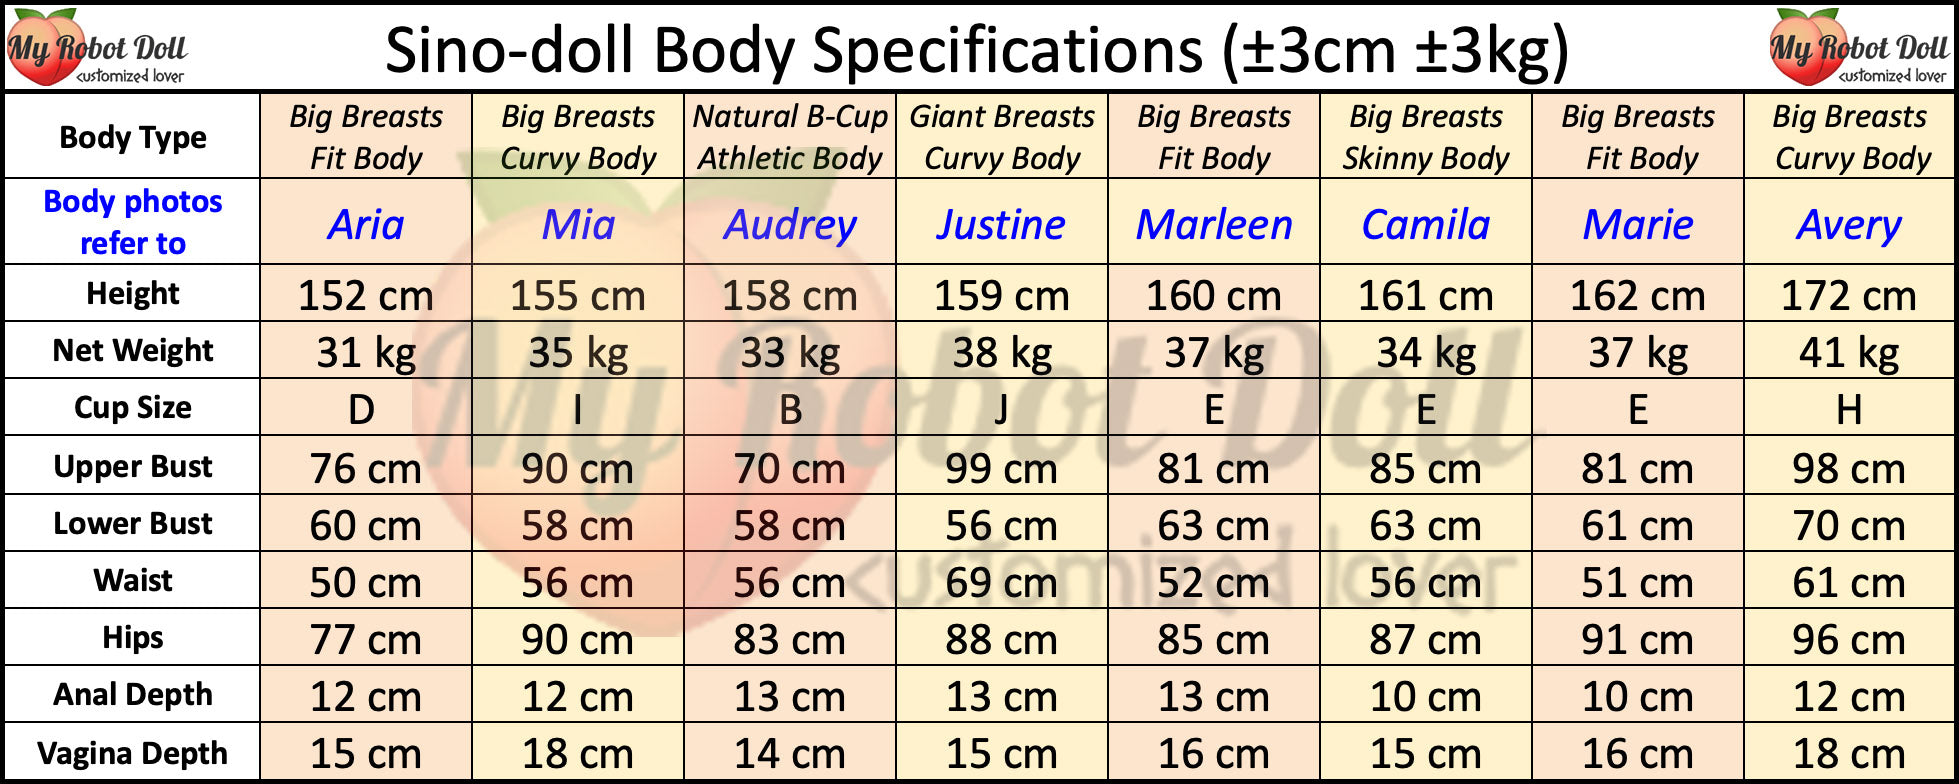 myrobotdoll.com sino-doll body specifications